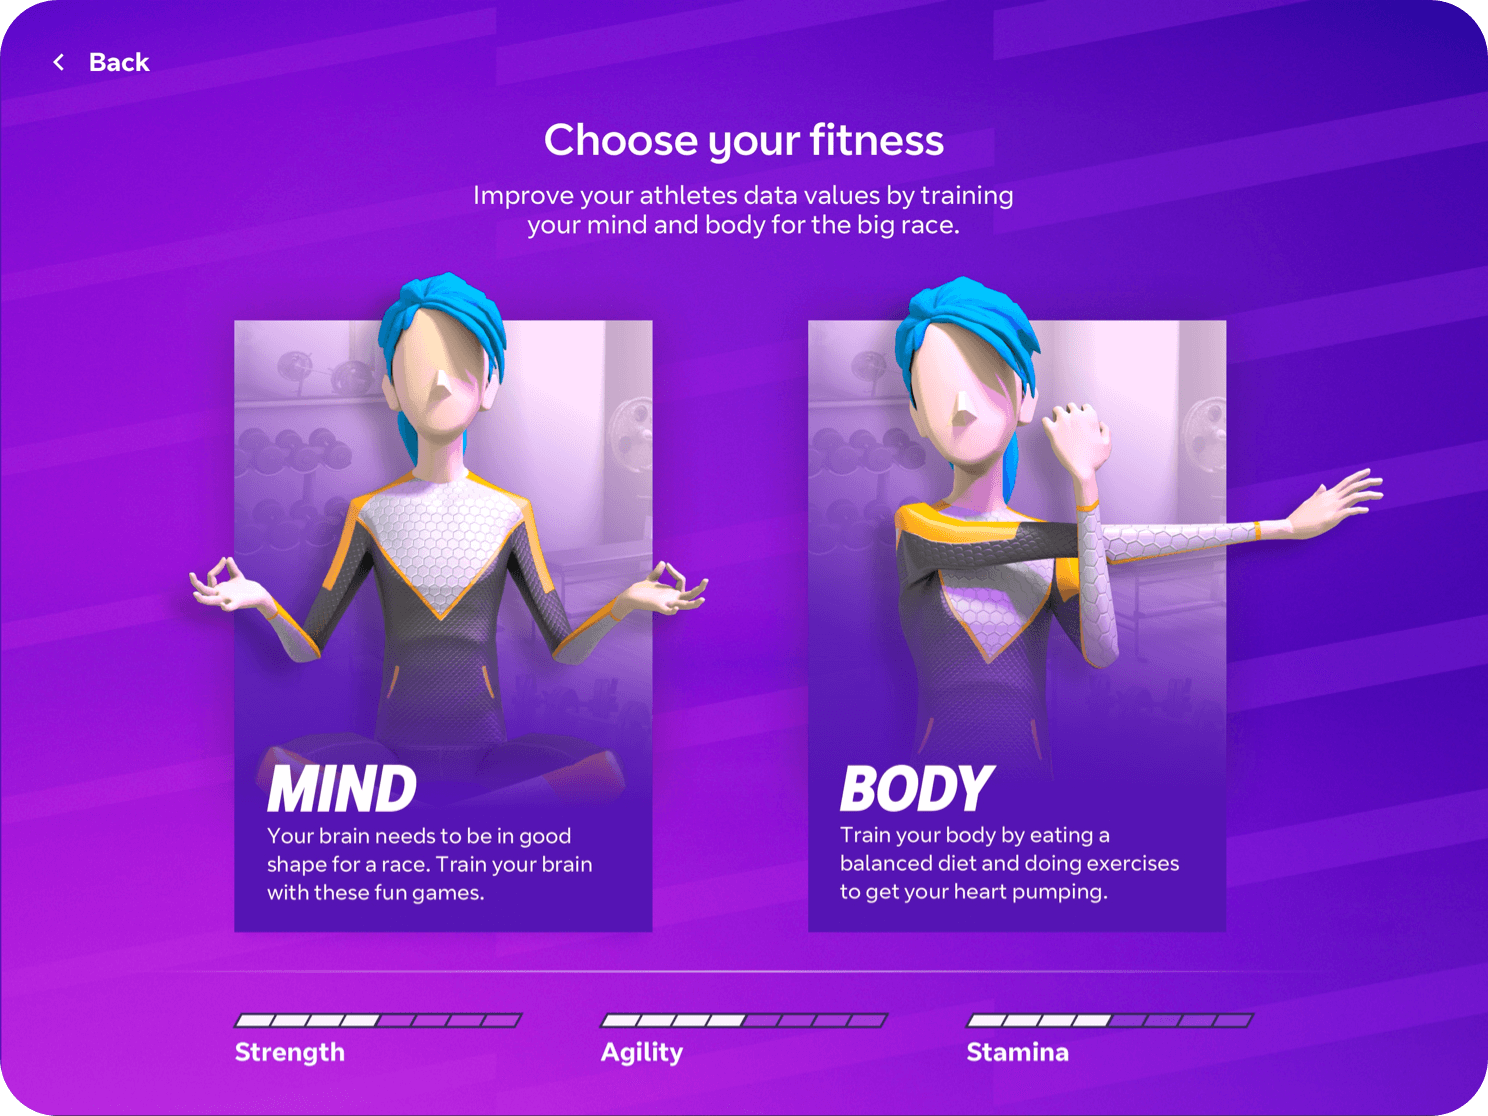 The choose your fitness screen of the iPad app